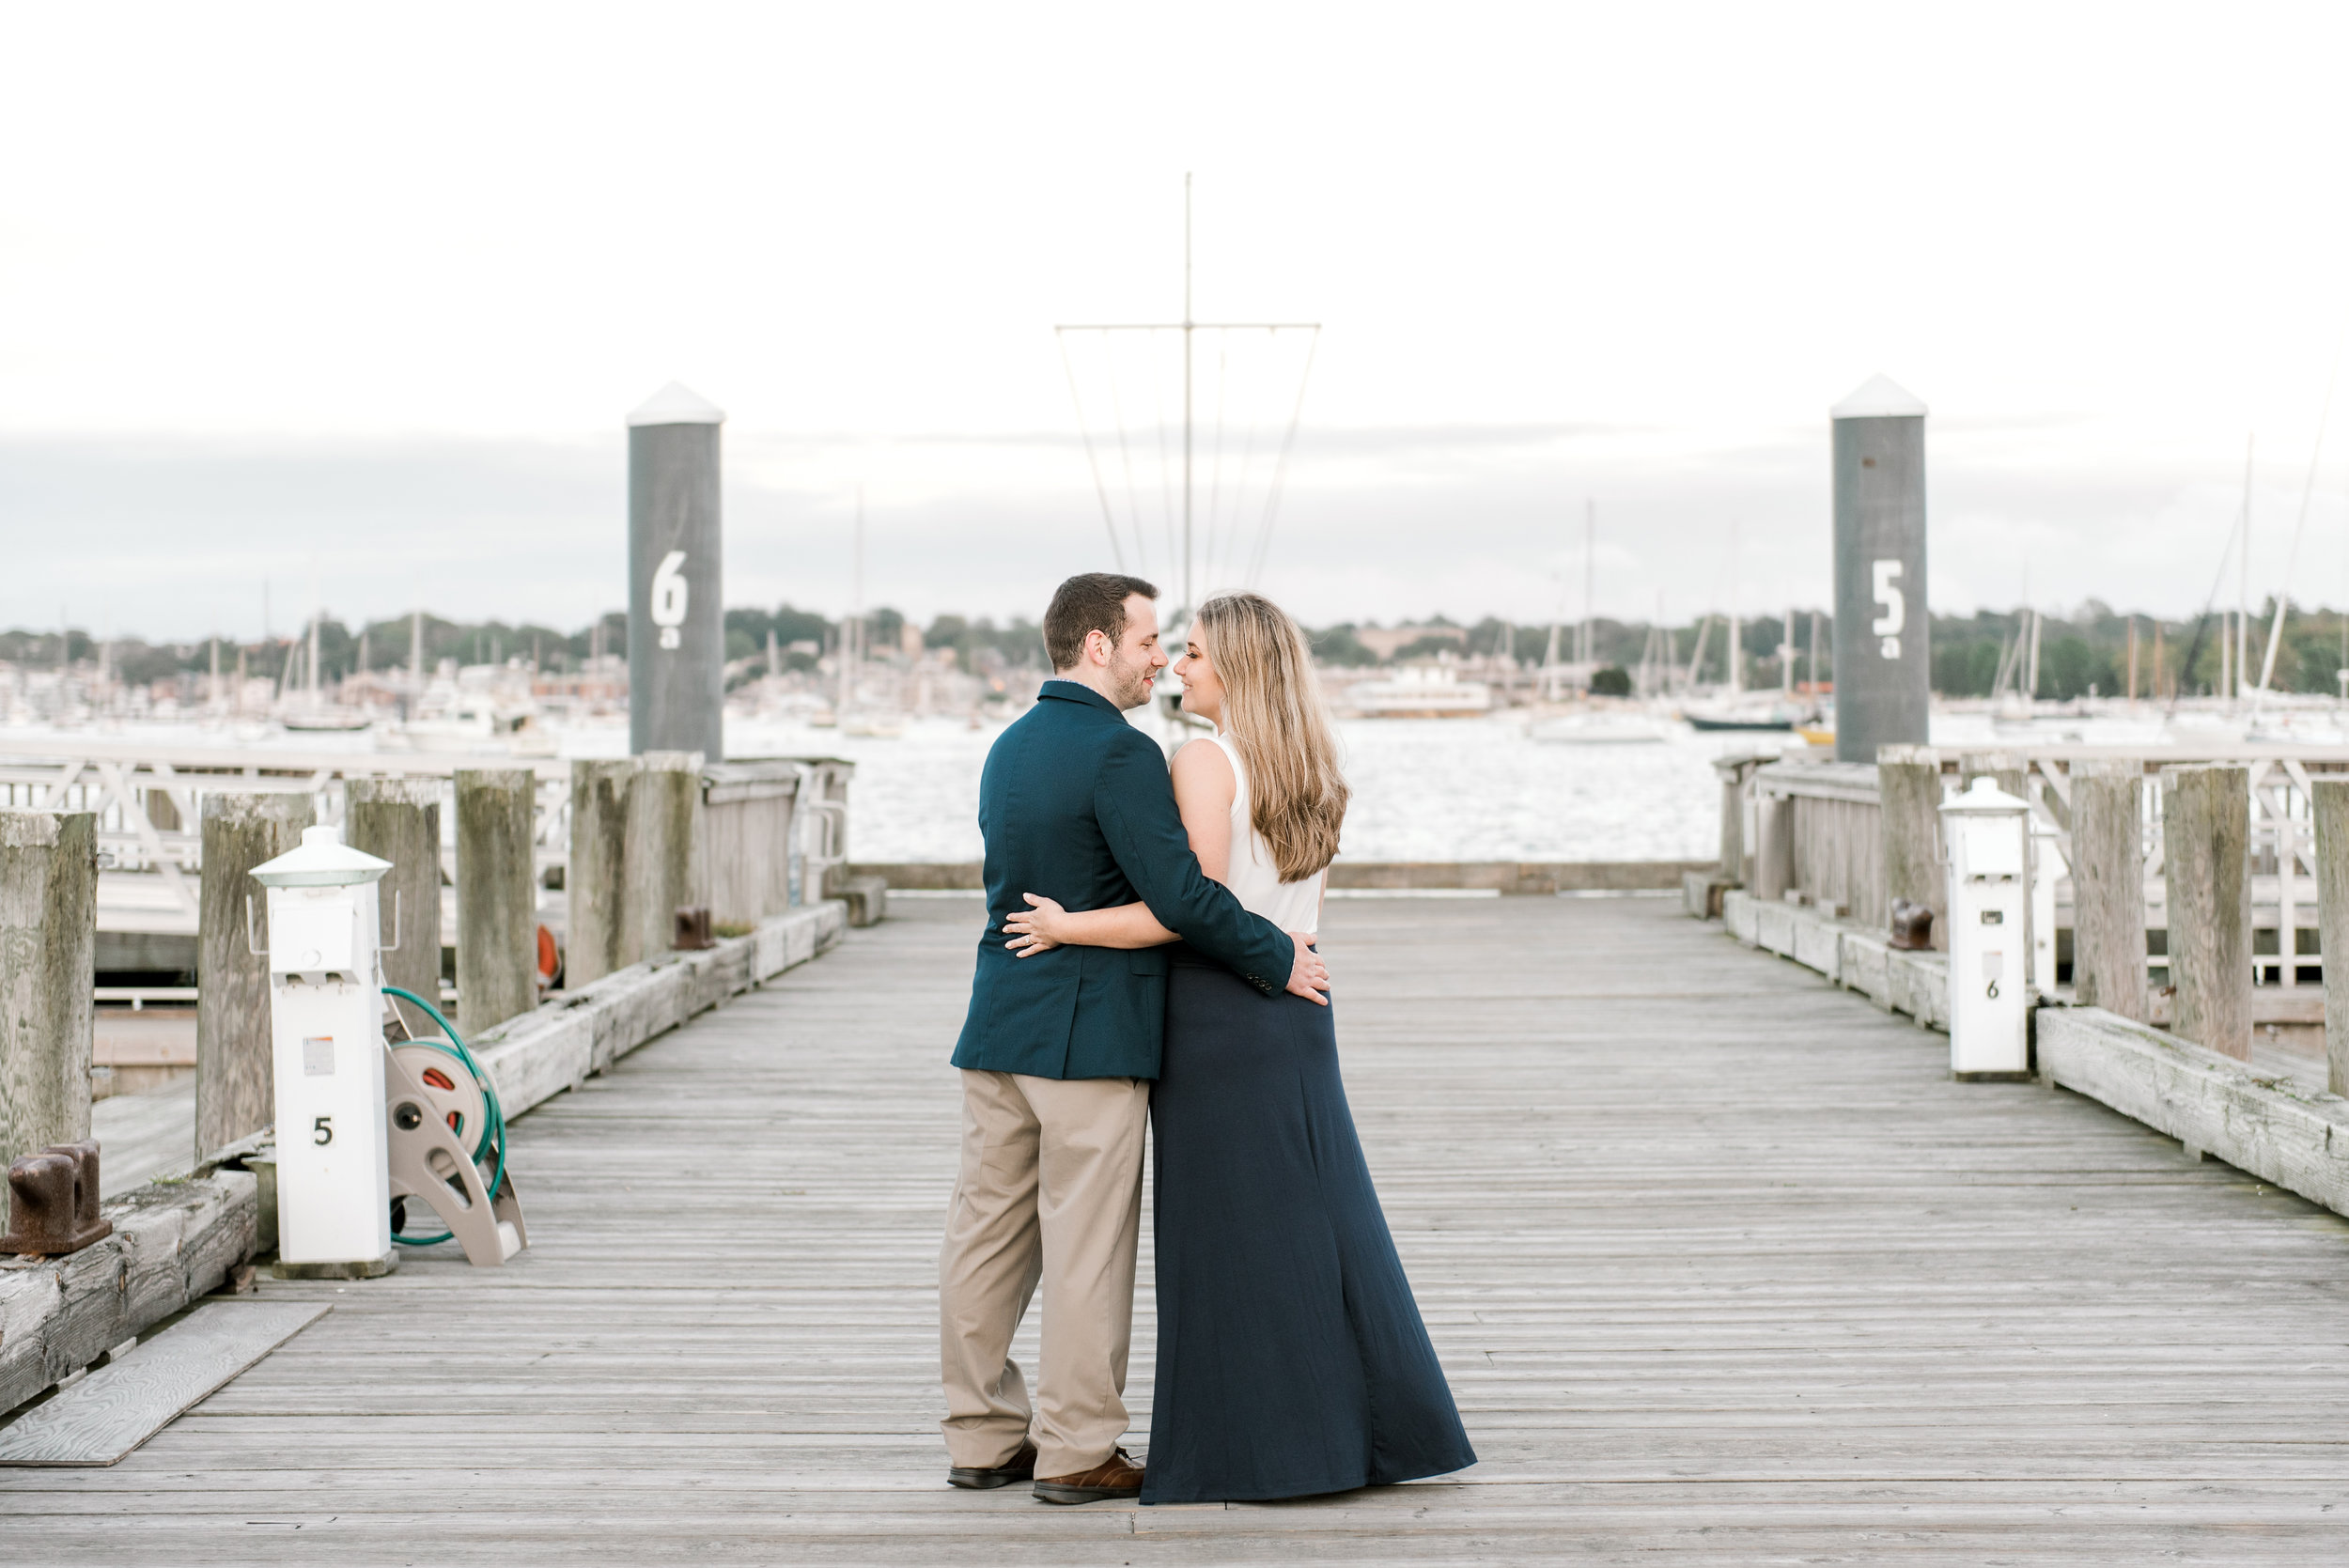 heather_and_connor_engagement-132.jpg